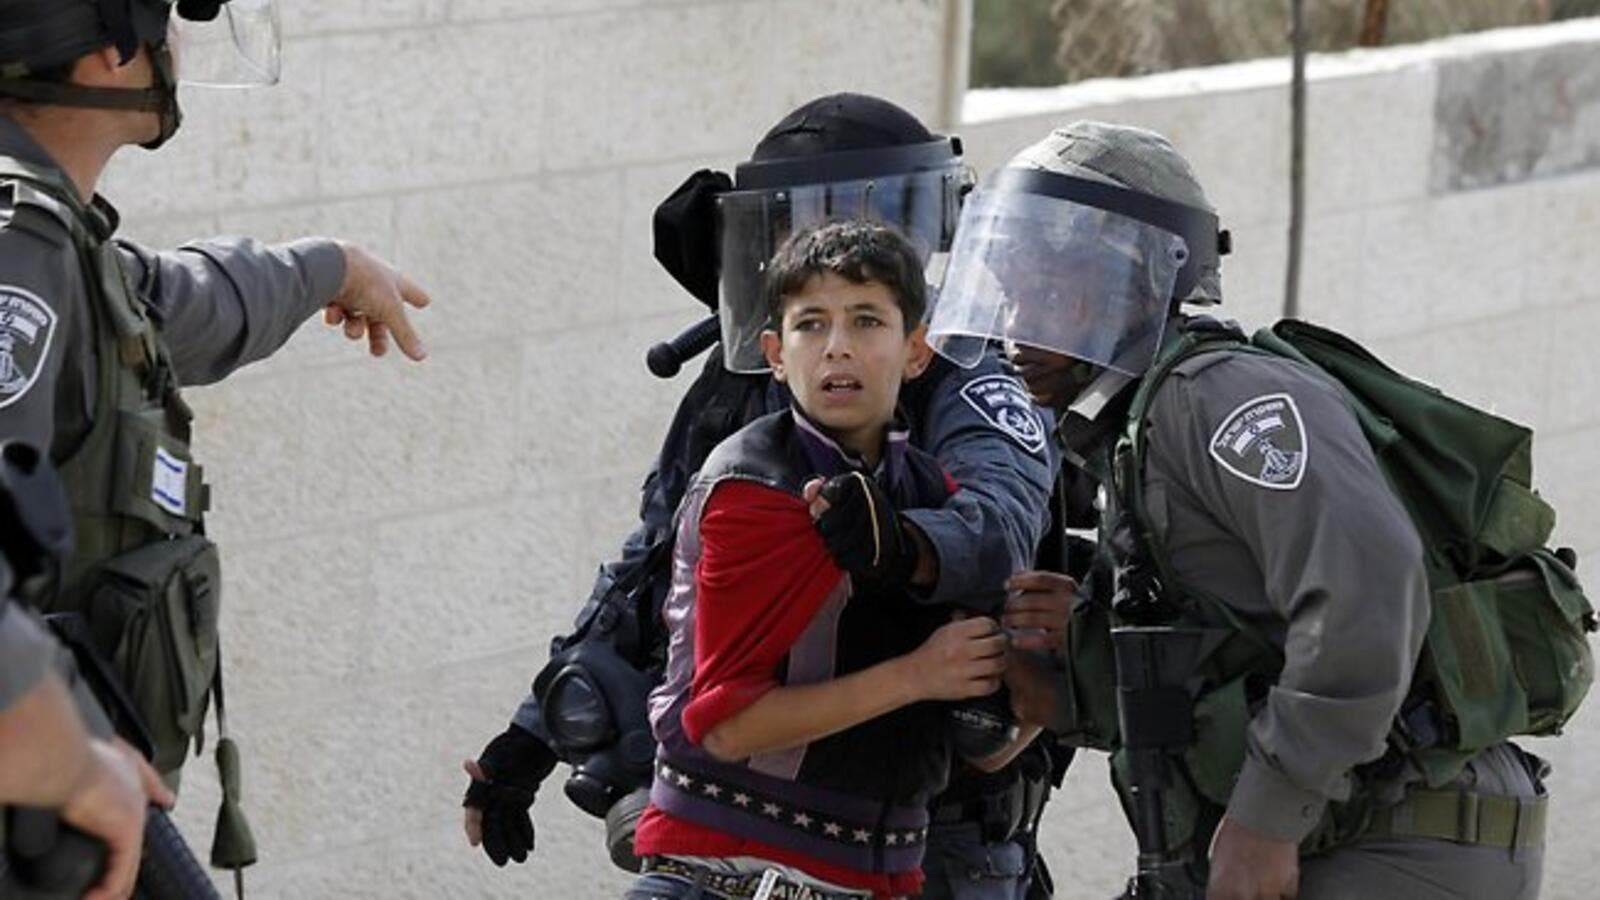 Israeli soldiers detain a Palestinian youth during protests in the West Bank. (AFP/File)